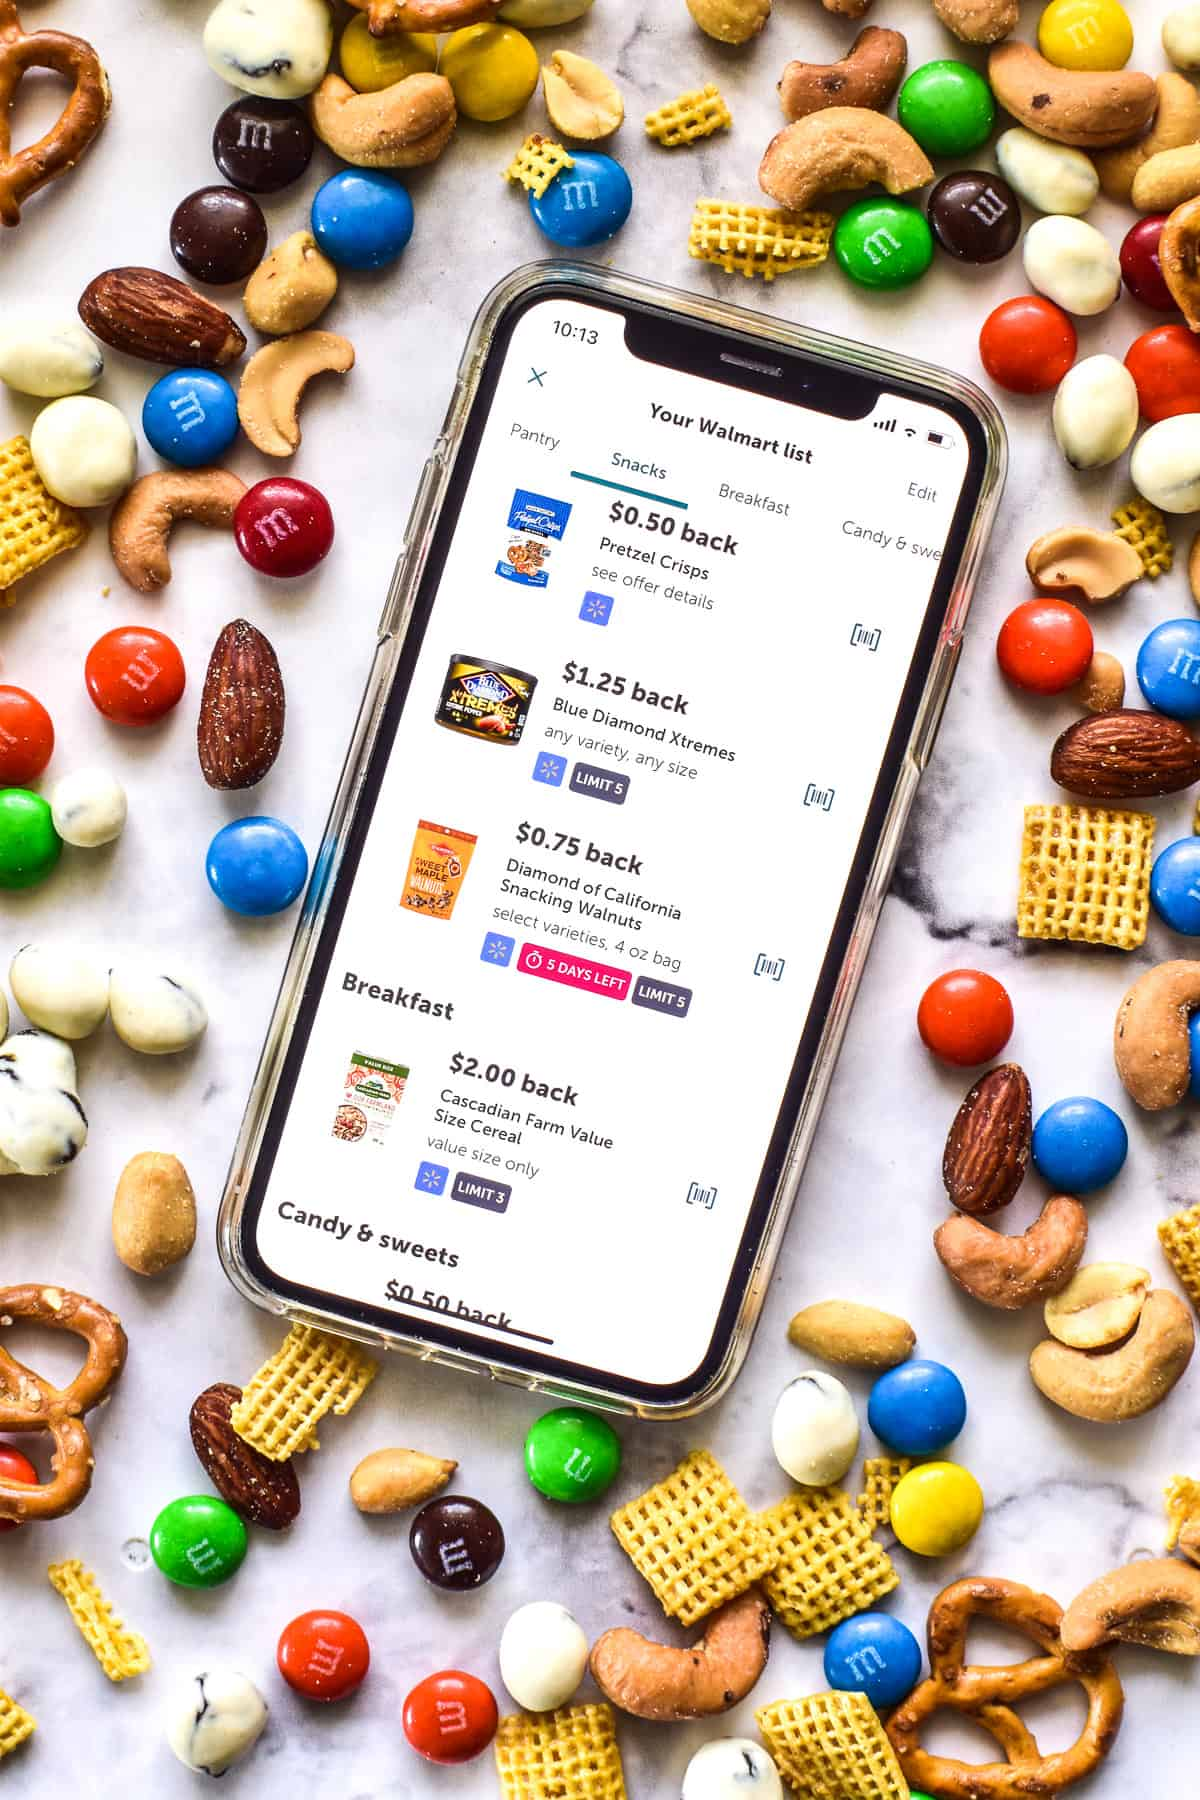 Phone showing Ibotta app surrounded by trail mix